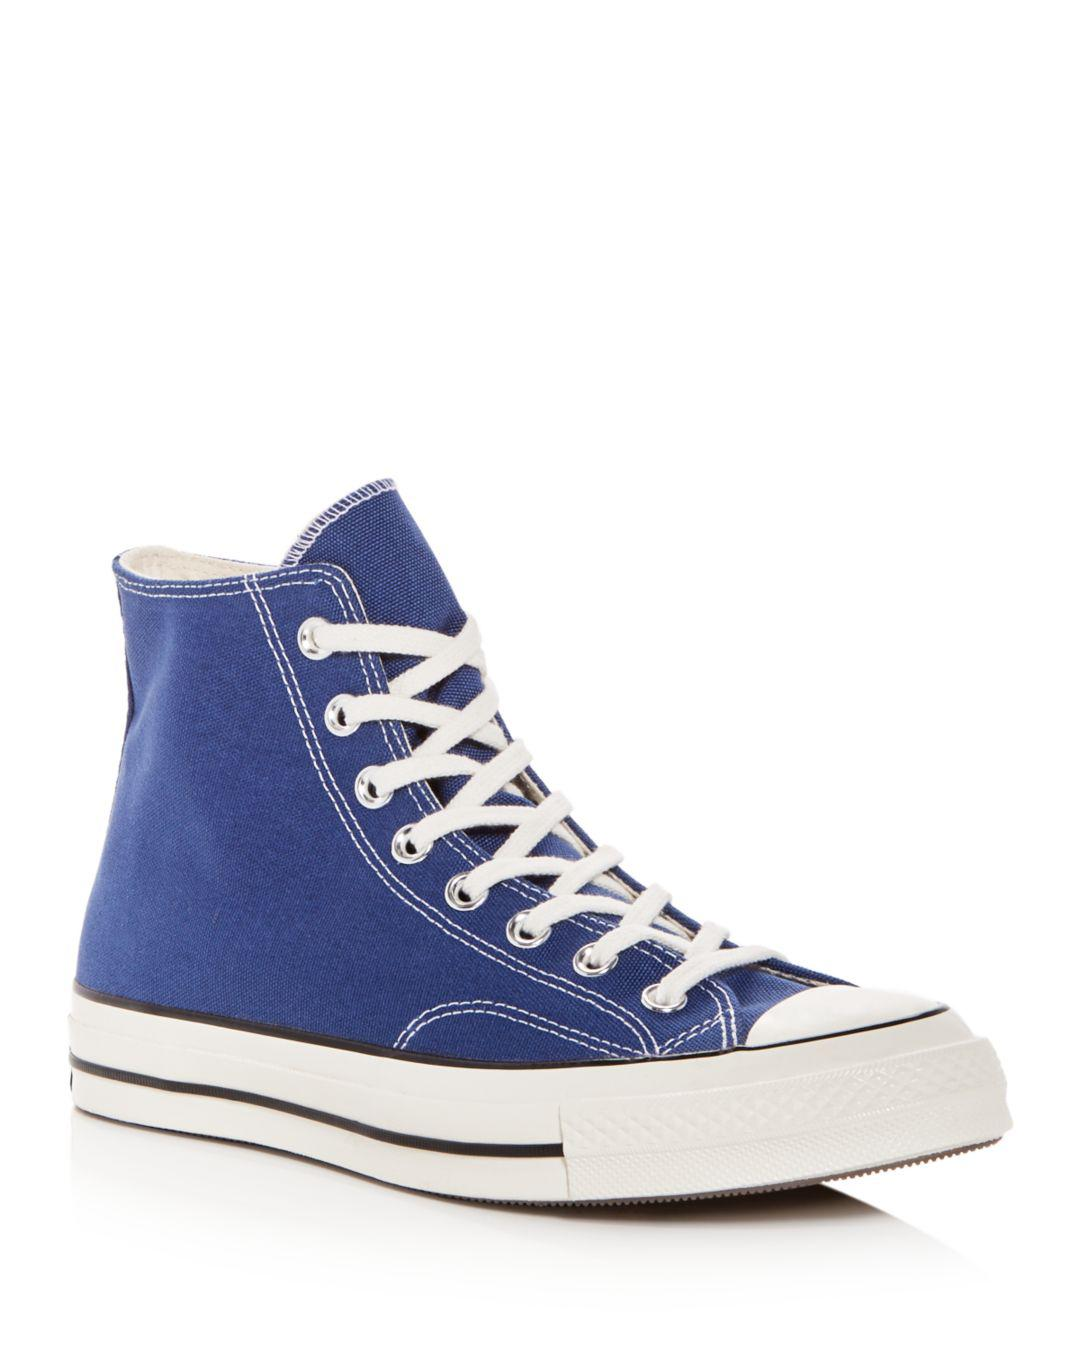 Lyst - Converse Men s Chuck Taylor All Star 70 High-top Sneakers in ... ed3d09e3988d